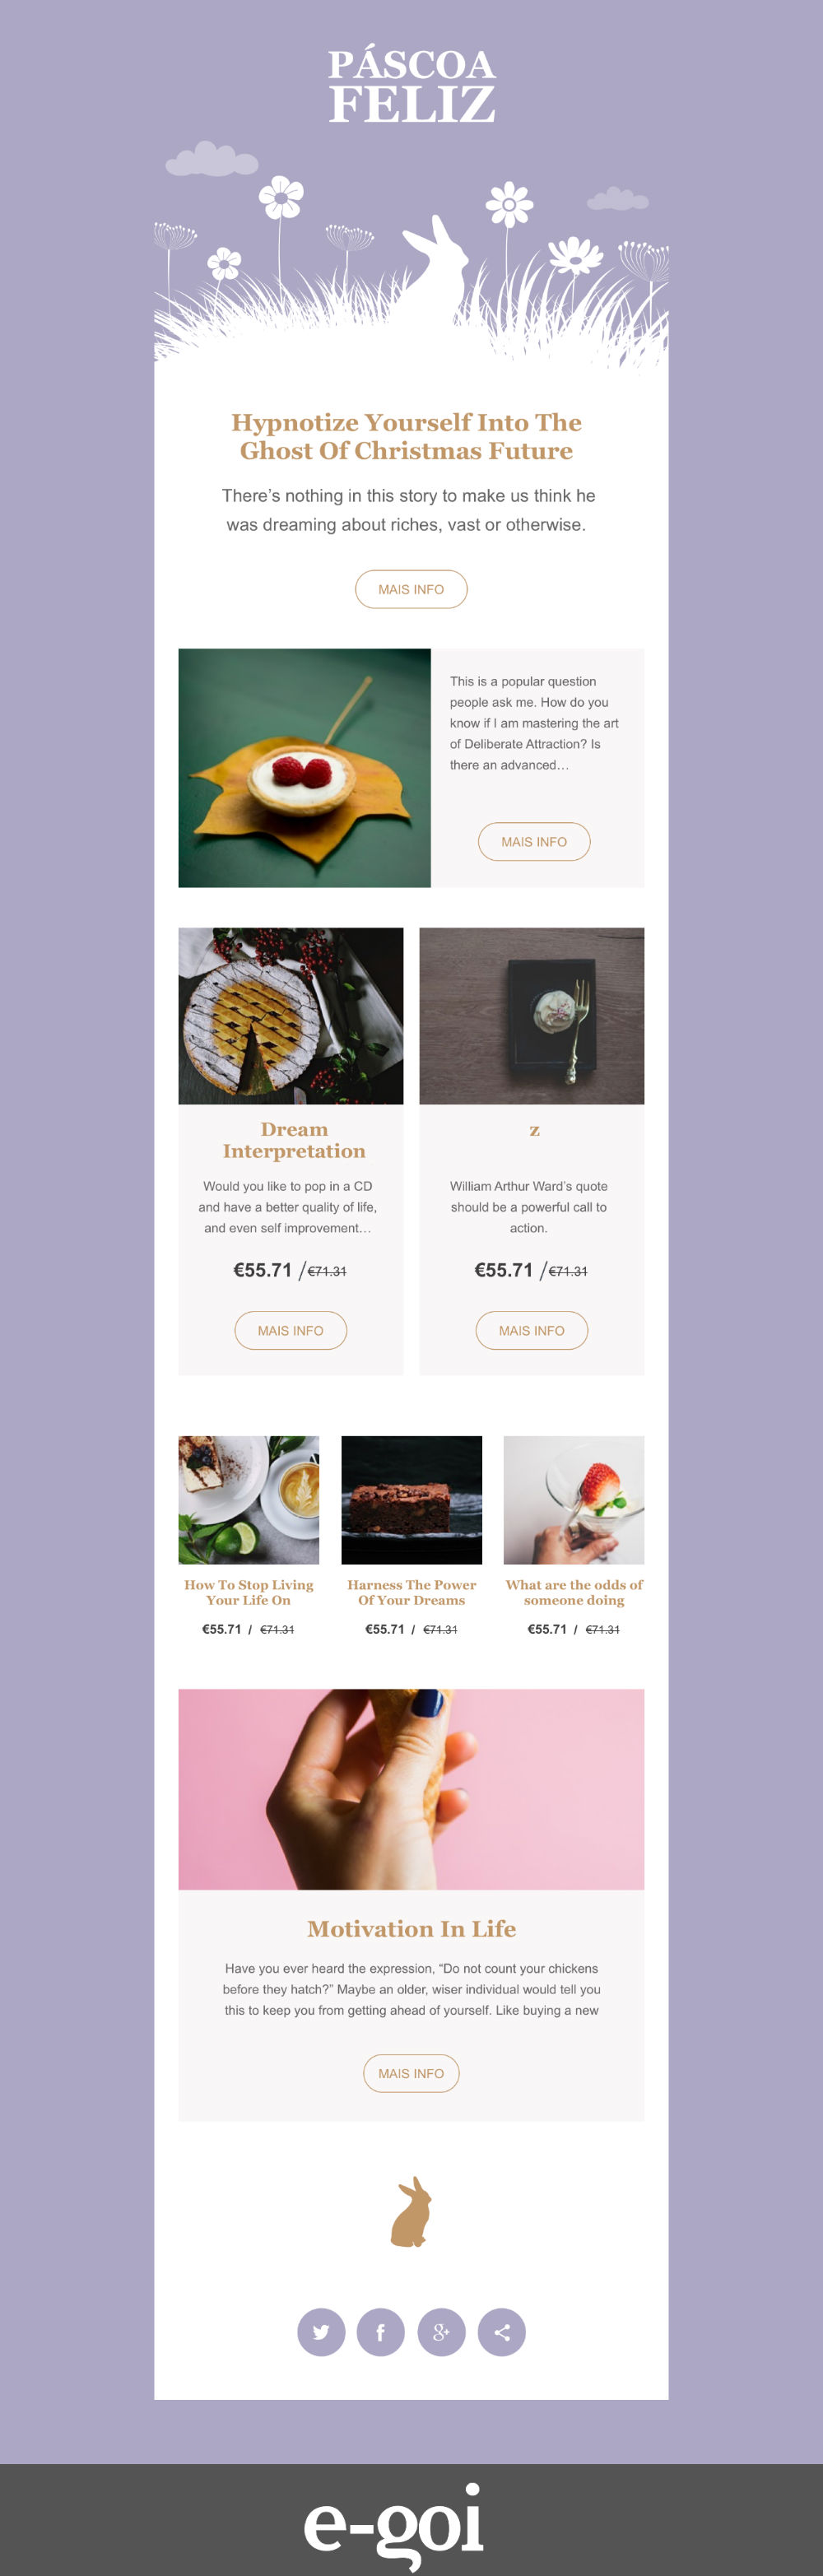 Template De Email Marketing Gratuito Simples E Profissional - Free email advertisement template